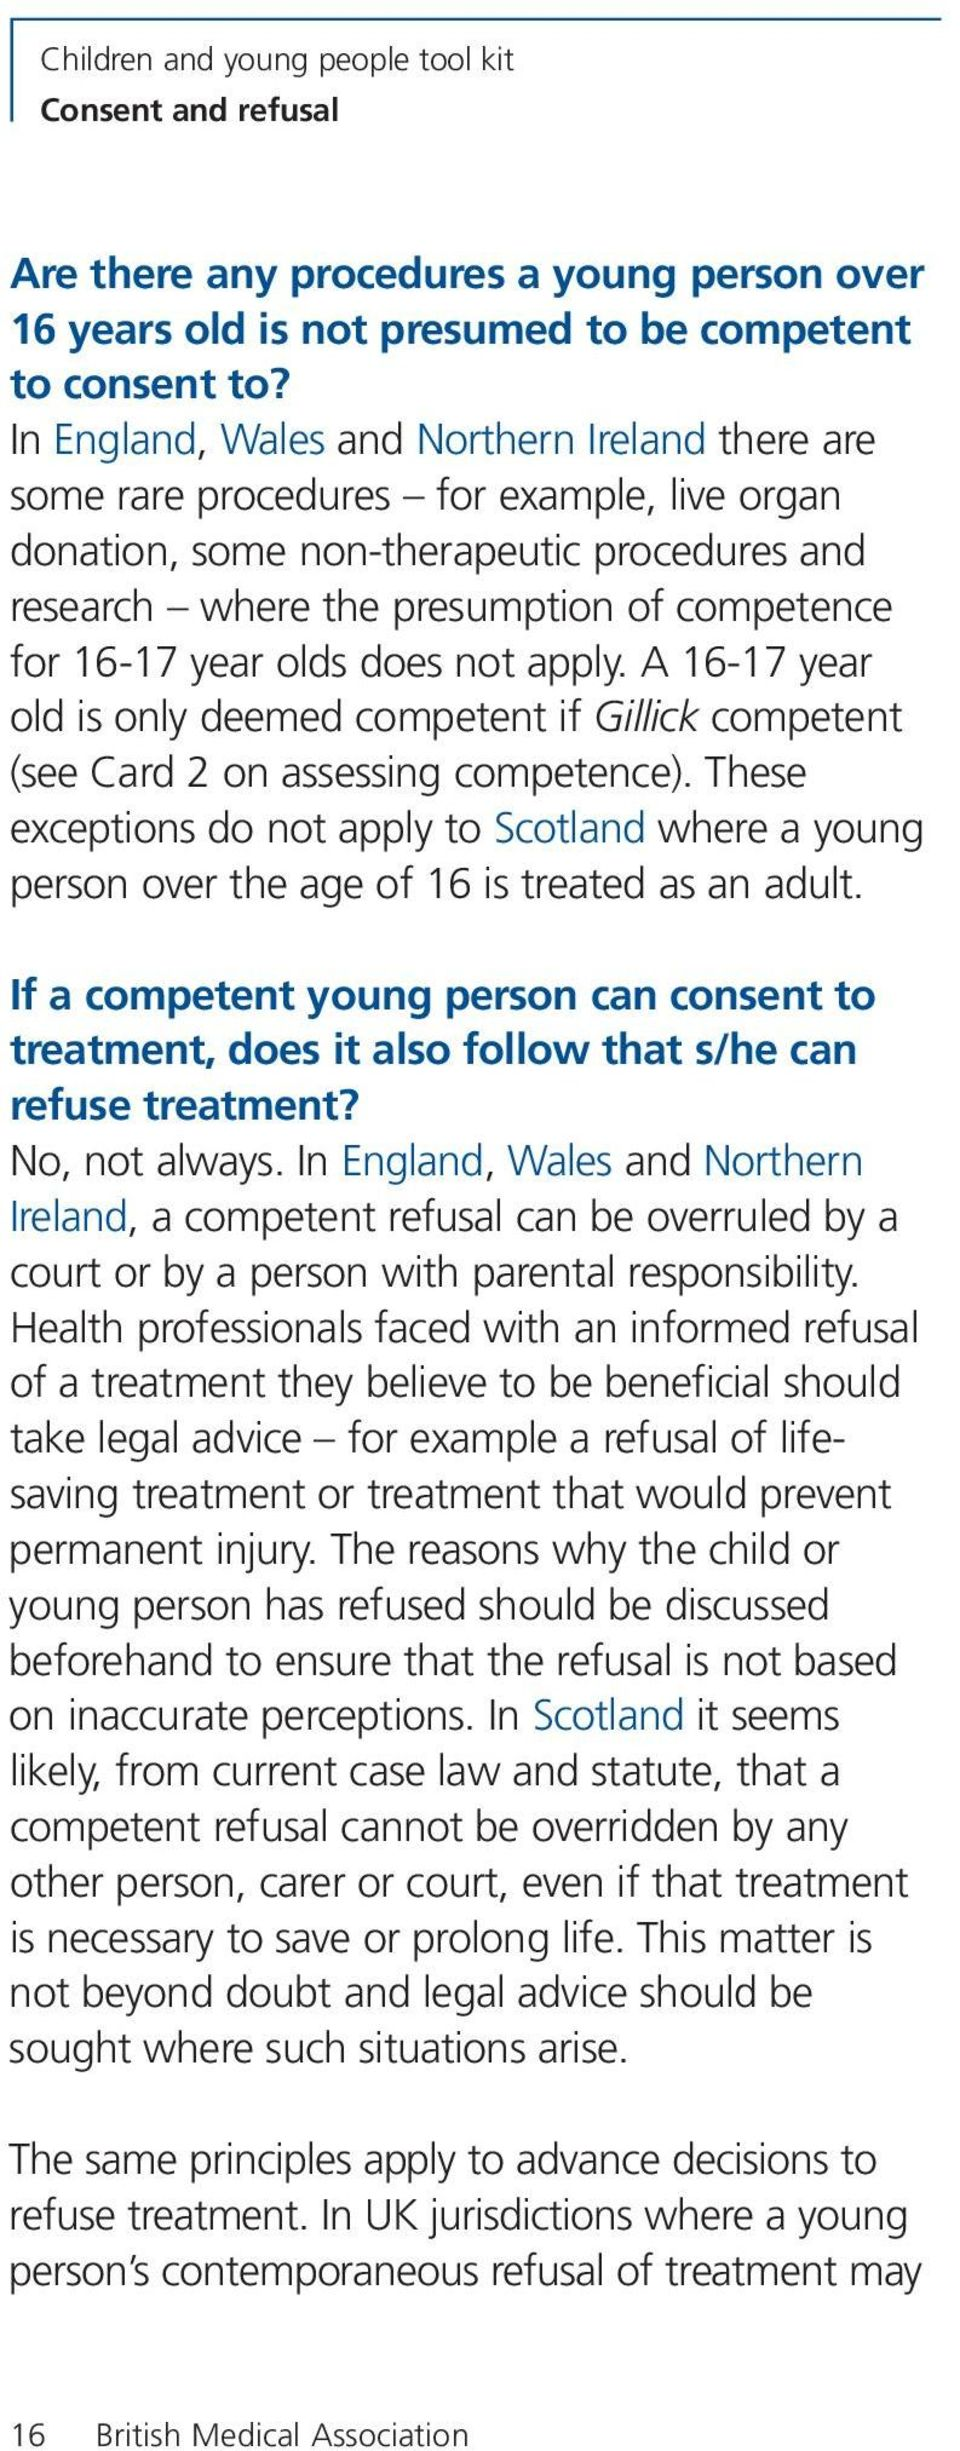 olds does not apply. A 16-17 year old is only deemed competent if Gillick competent (see Card 2 on assessing competence).